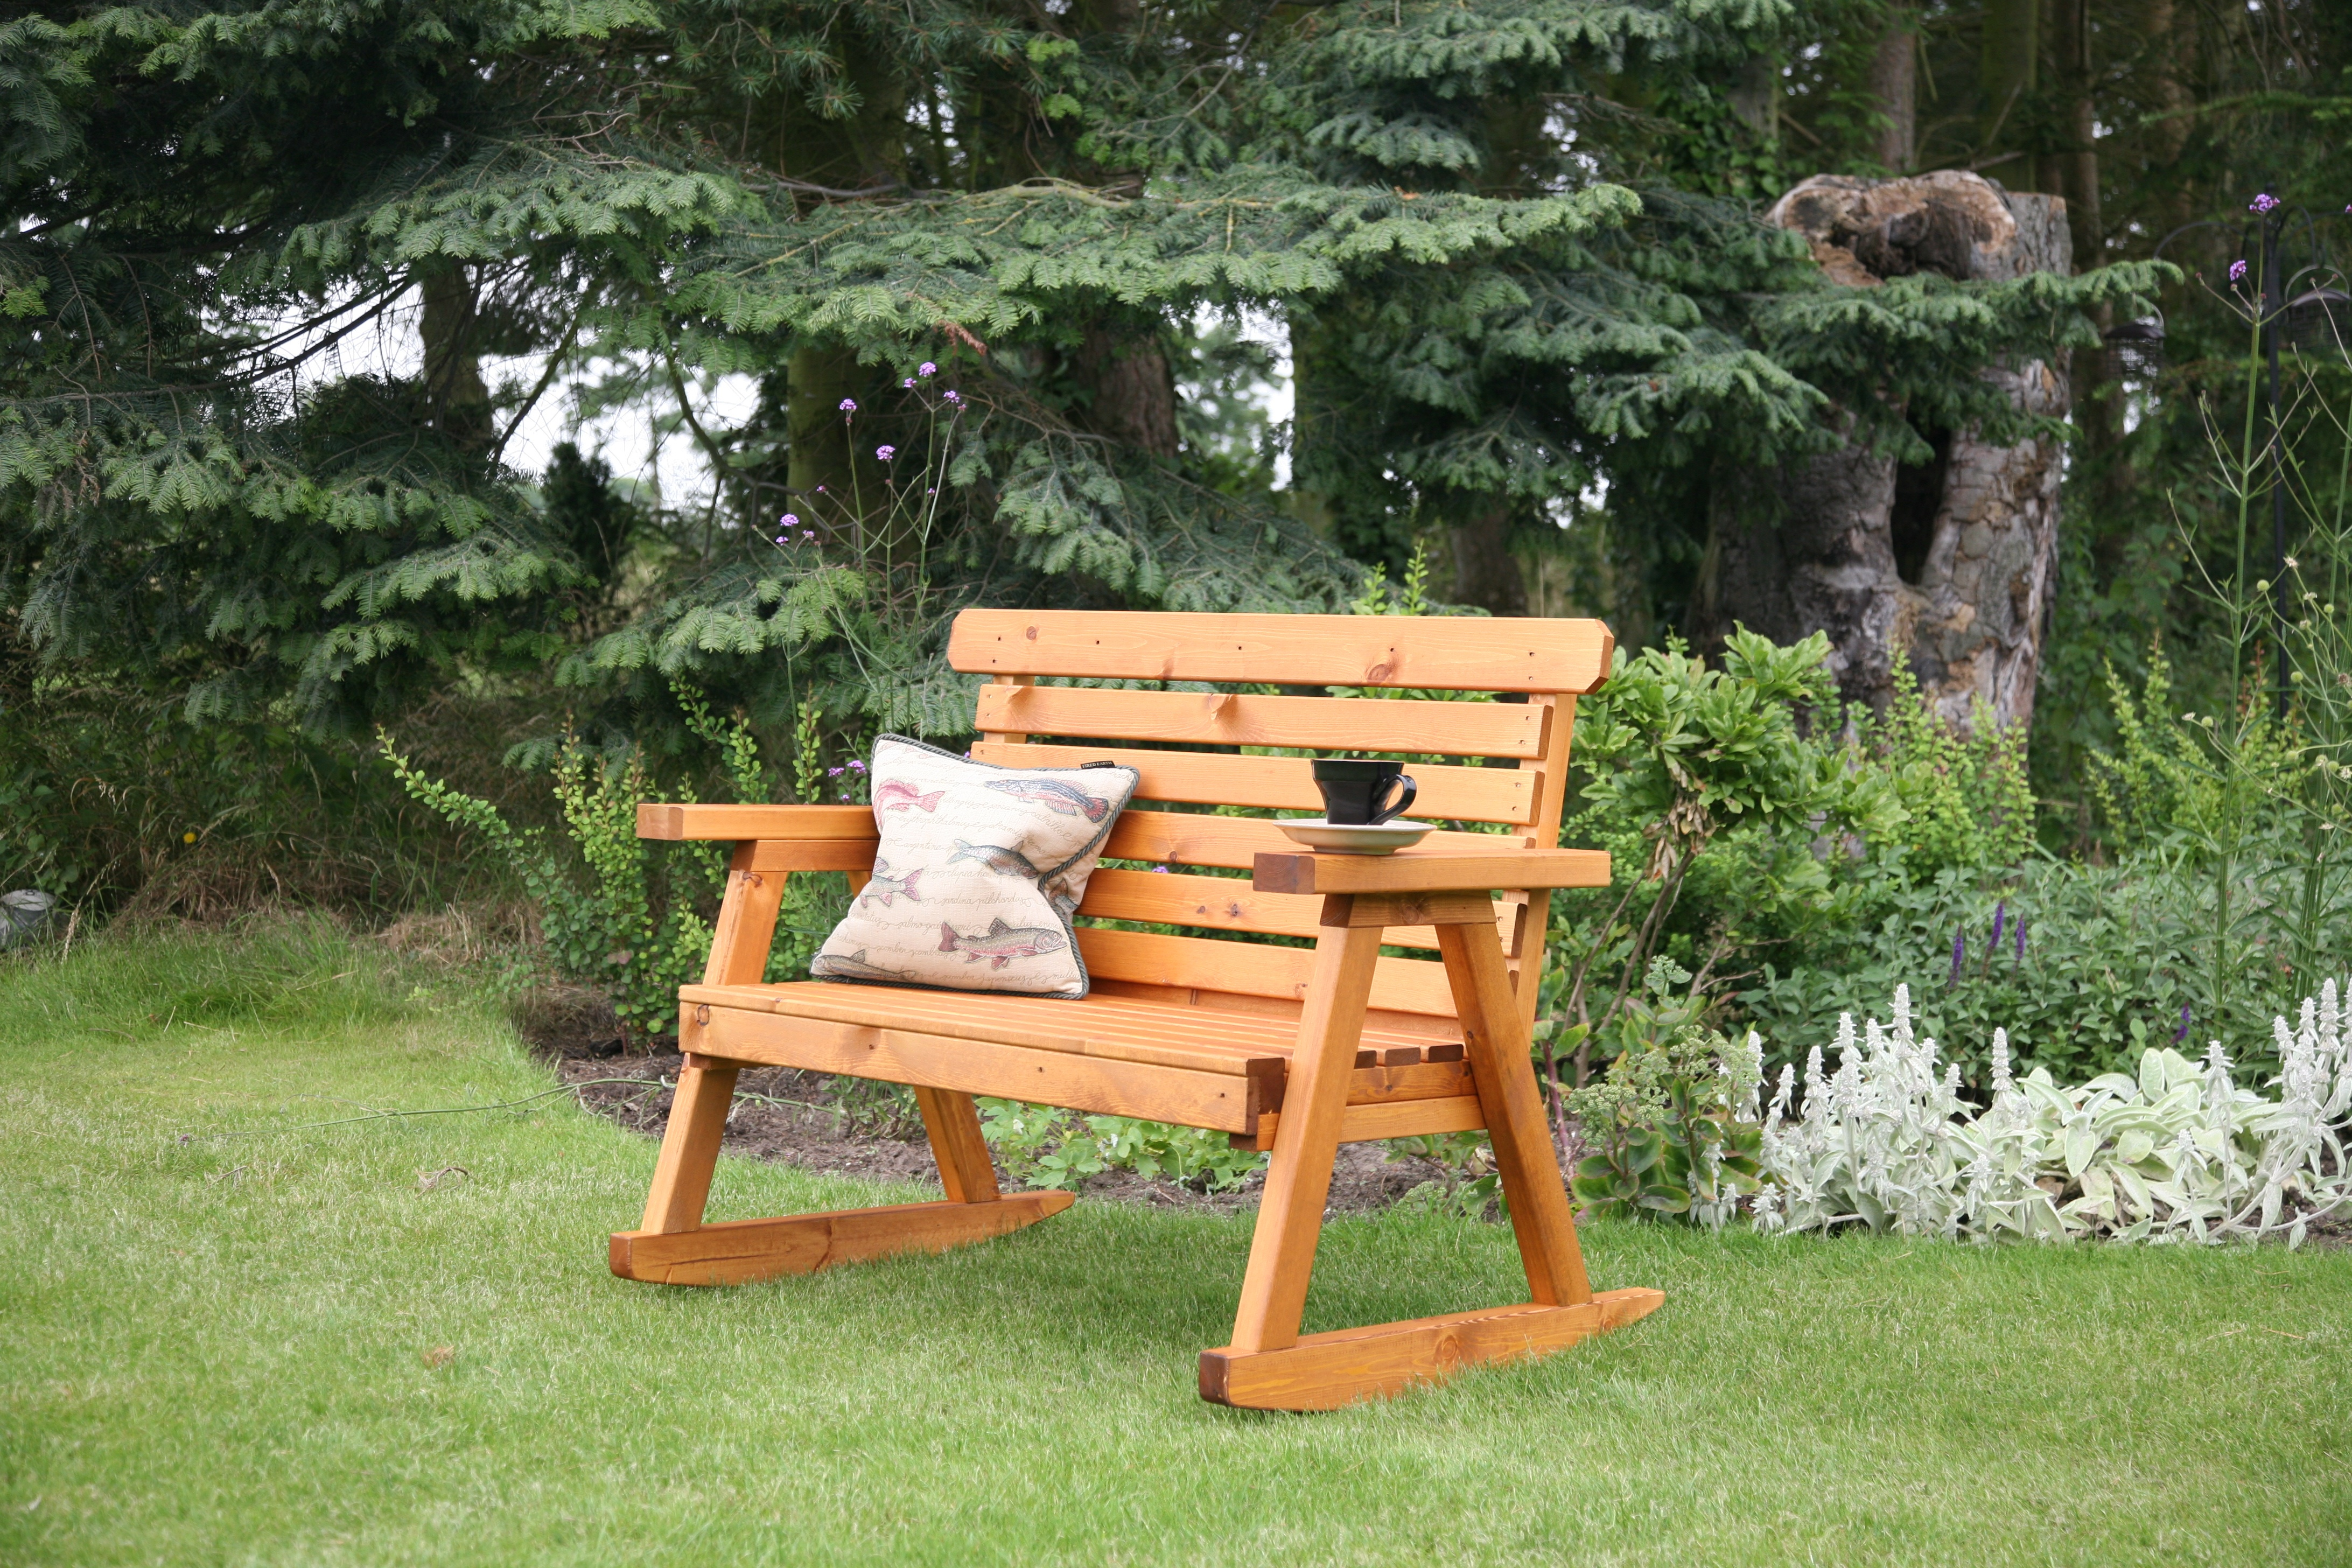 wooden back quality china plans chair bench rocking solid wood manufacturer lfurniture with adirondack